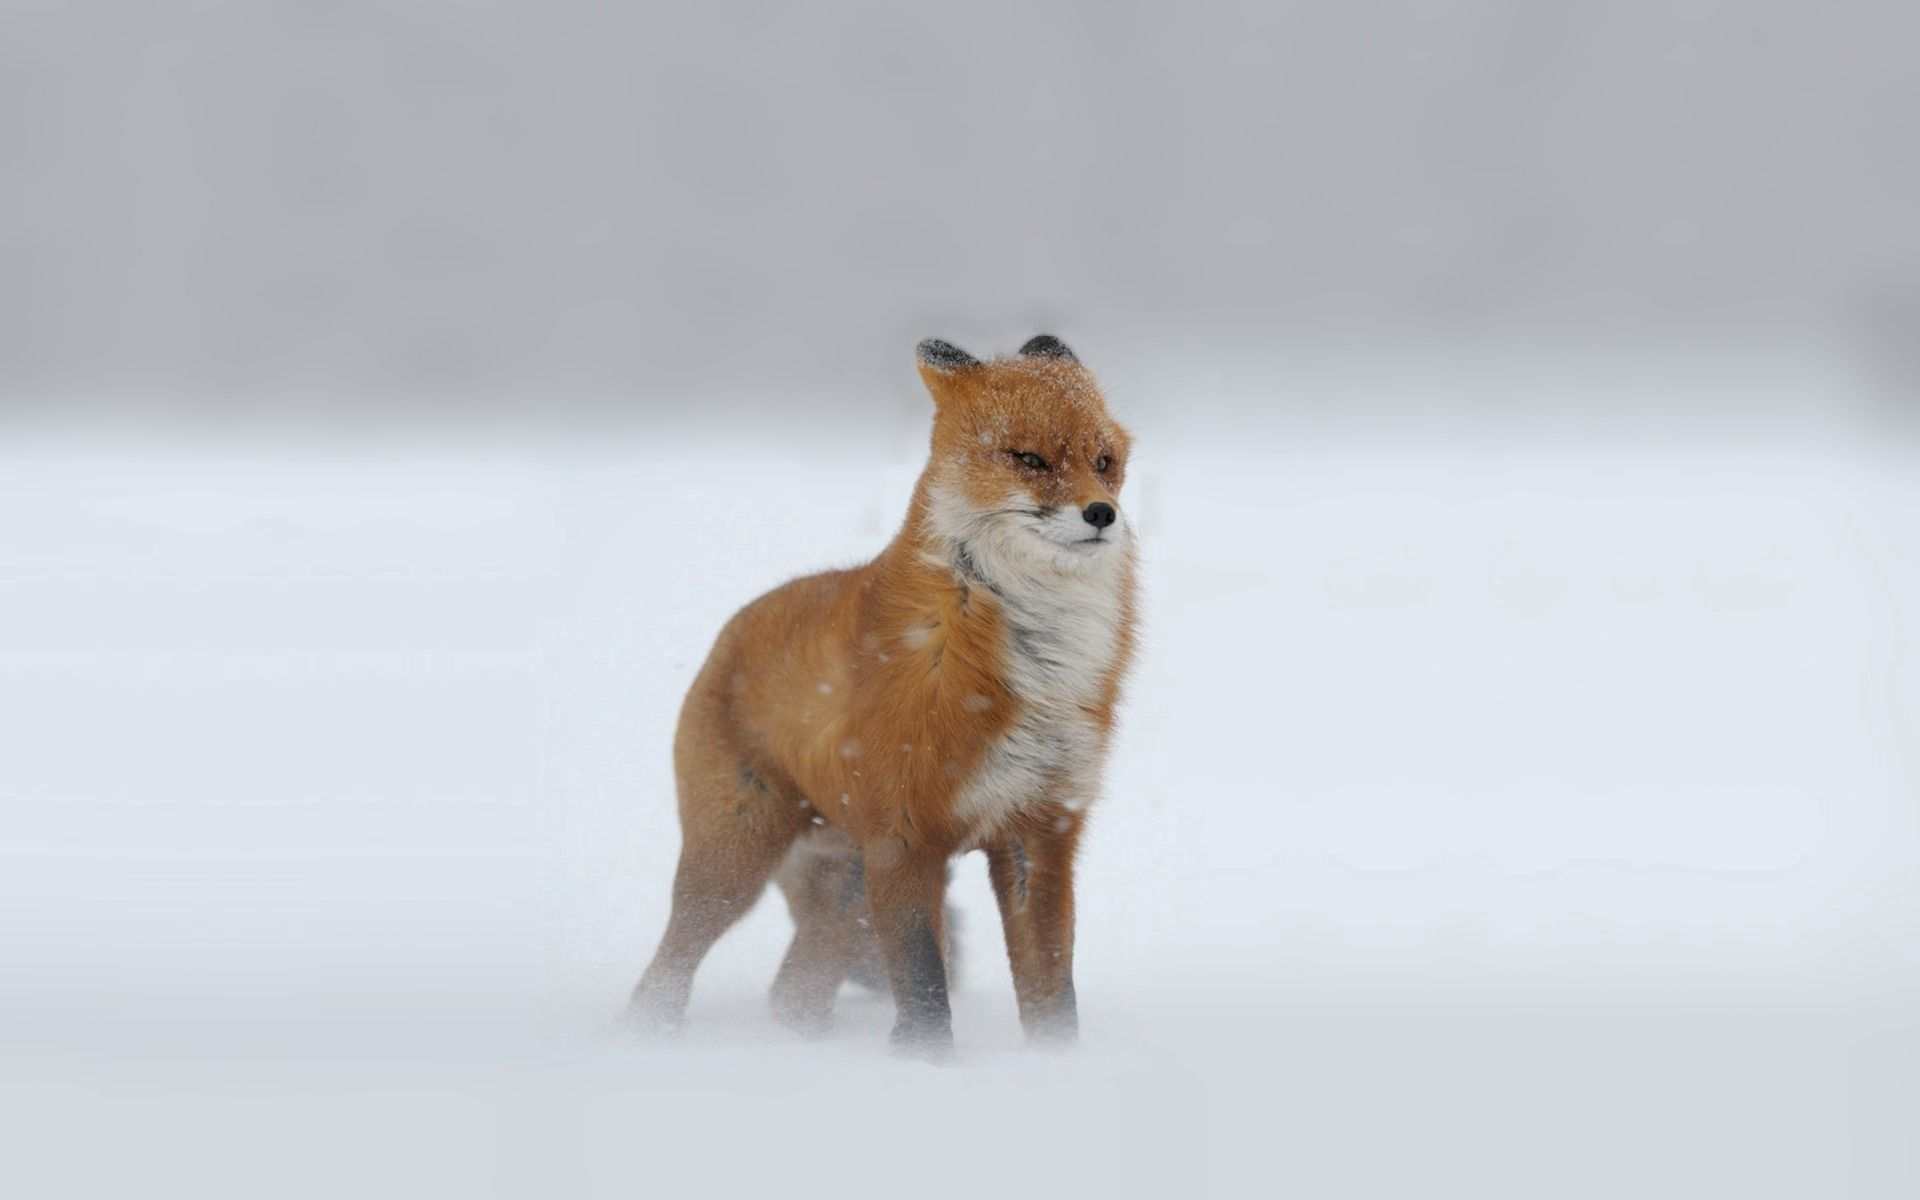 112366 download wallpaper Animals, Fox, Redhead, Looks, Winter, Snow, Snowstorm screensavers and pictures for free